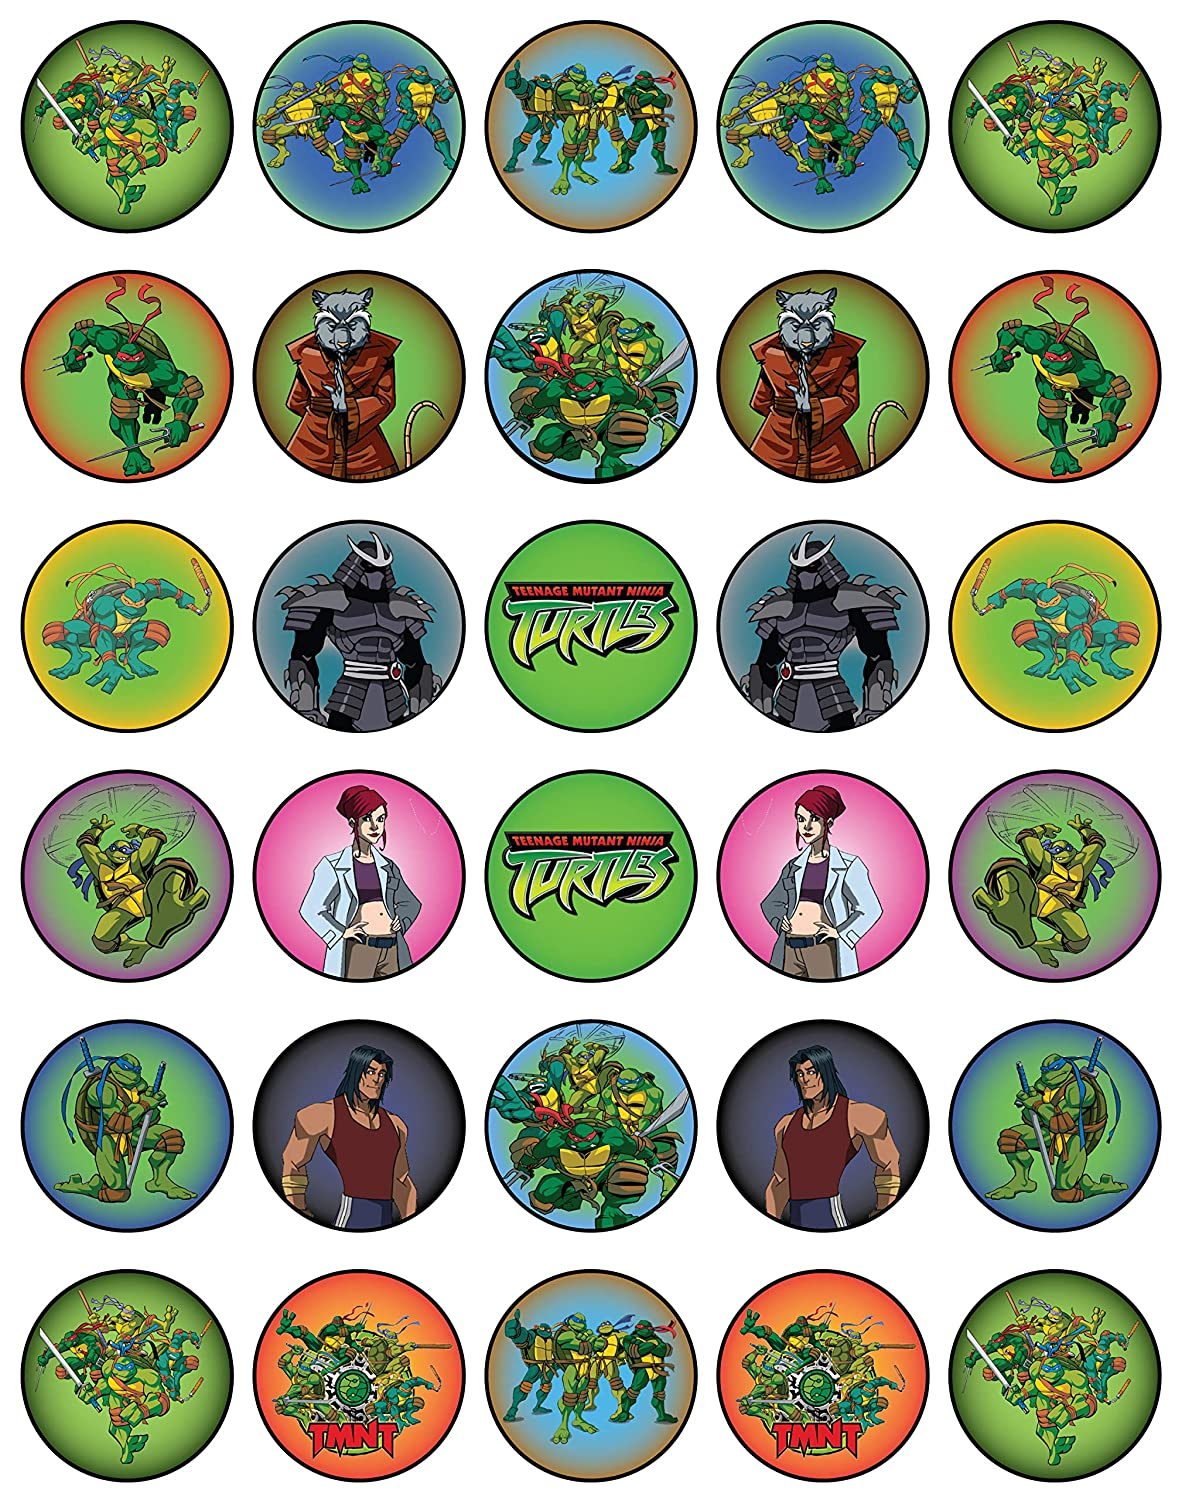 30 x Edible Cupcake Toppers – TMNT New Party Collection of Edible Cake Decorations |Edible Wafer Sheet